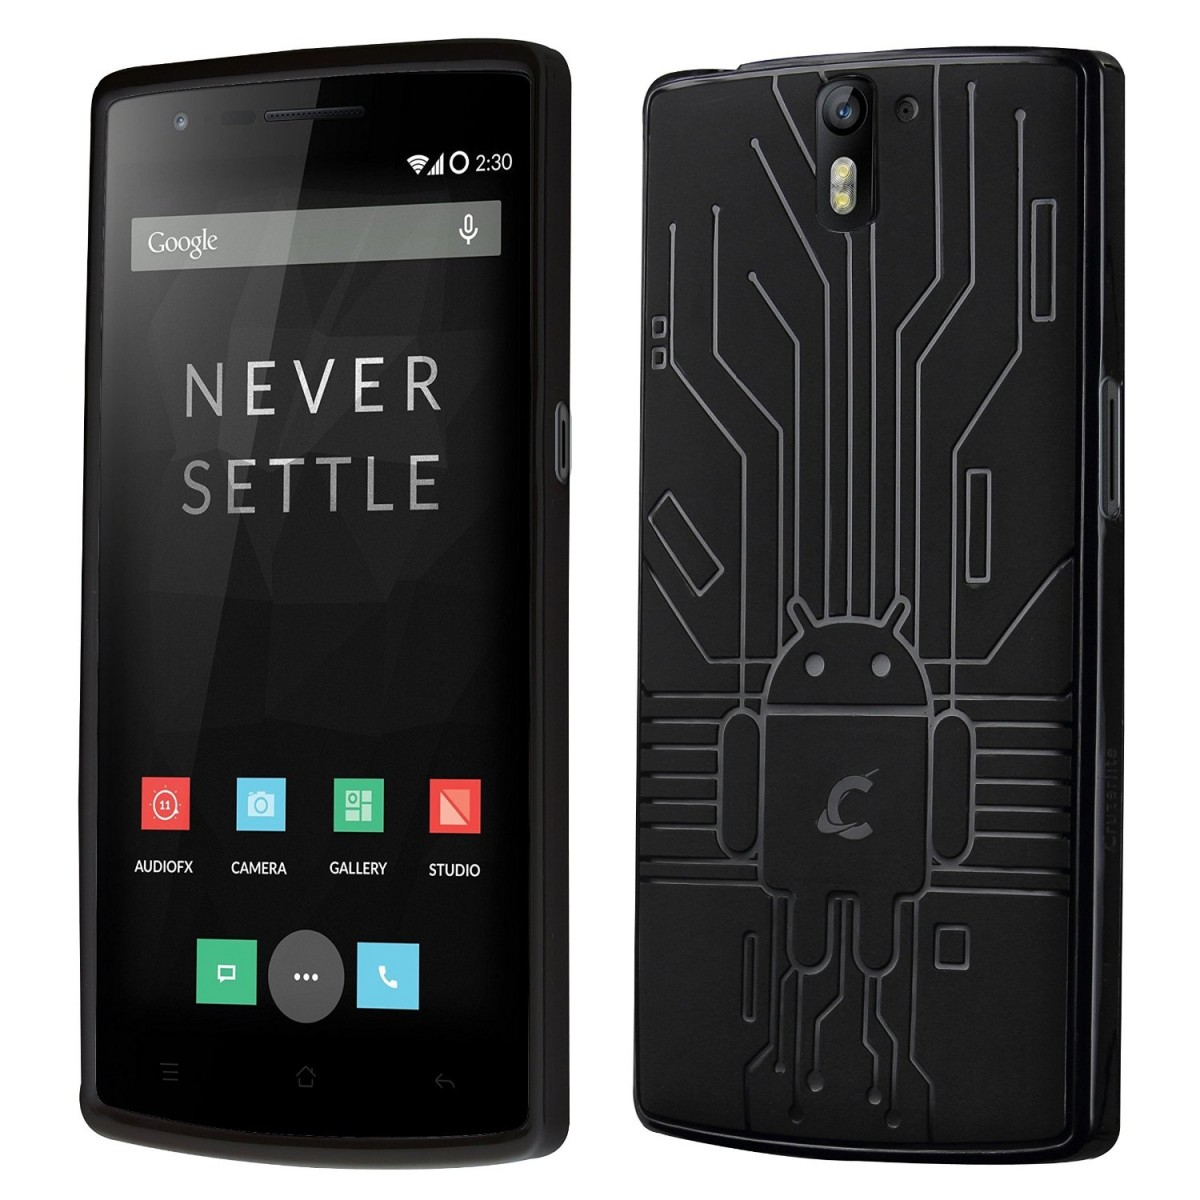 size 40 d5b70 ff794 OnePlus One Case, Cruzerlite Bugdroid Circuit TPU Case Compatible for  OnePlus One - Black